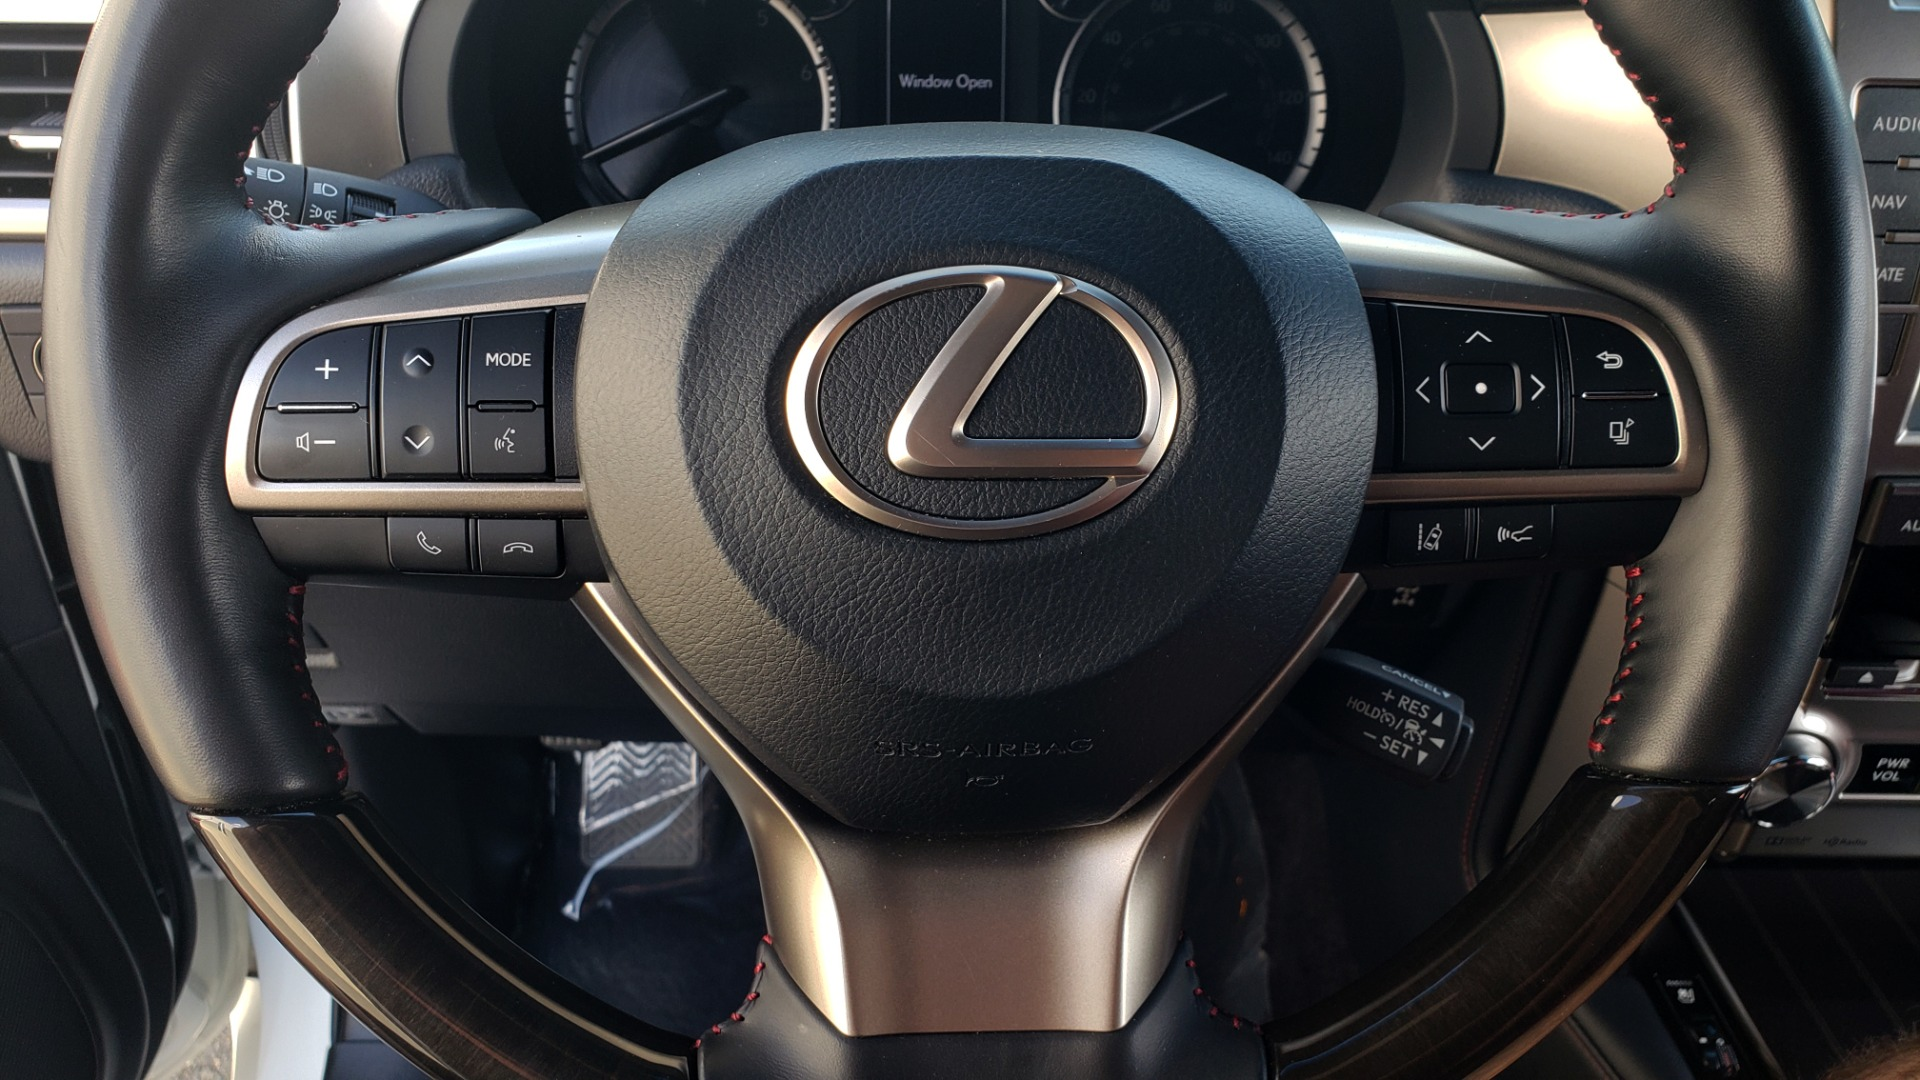 Used 2021 Lexus GX 460 PREMIUM / AWD / NAV / SUNROOF / 3-ROW / REARVIEW for sale Sold at Formula Imports in Charlotte NC 28227 38